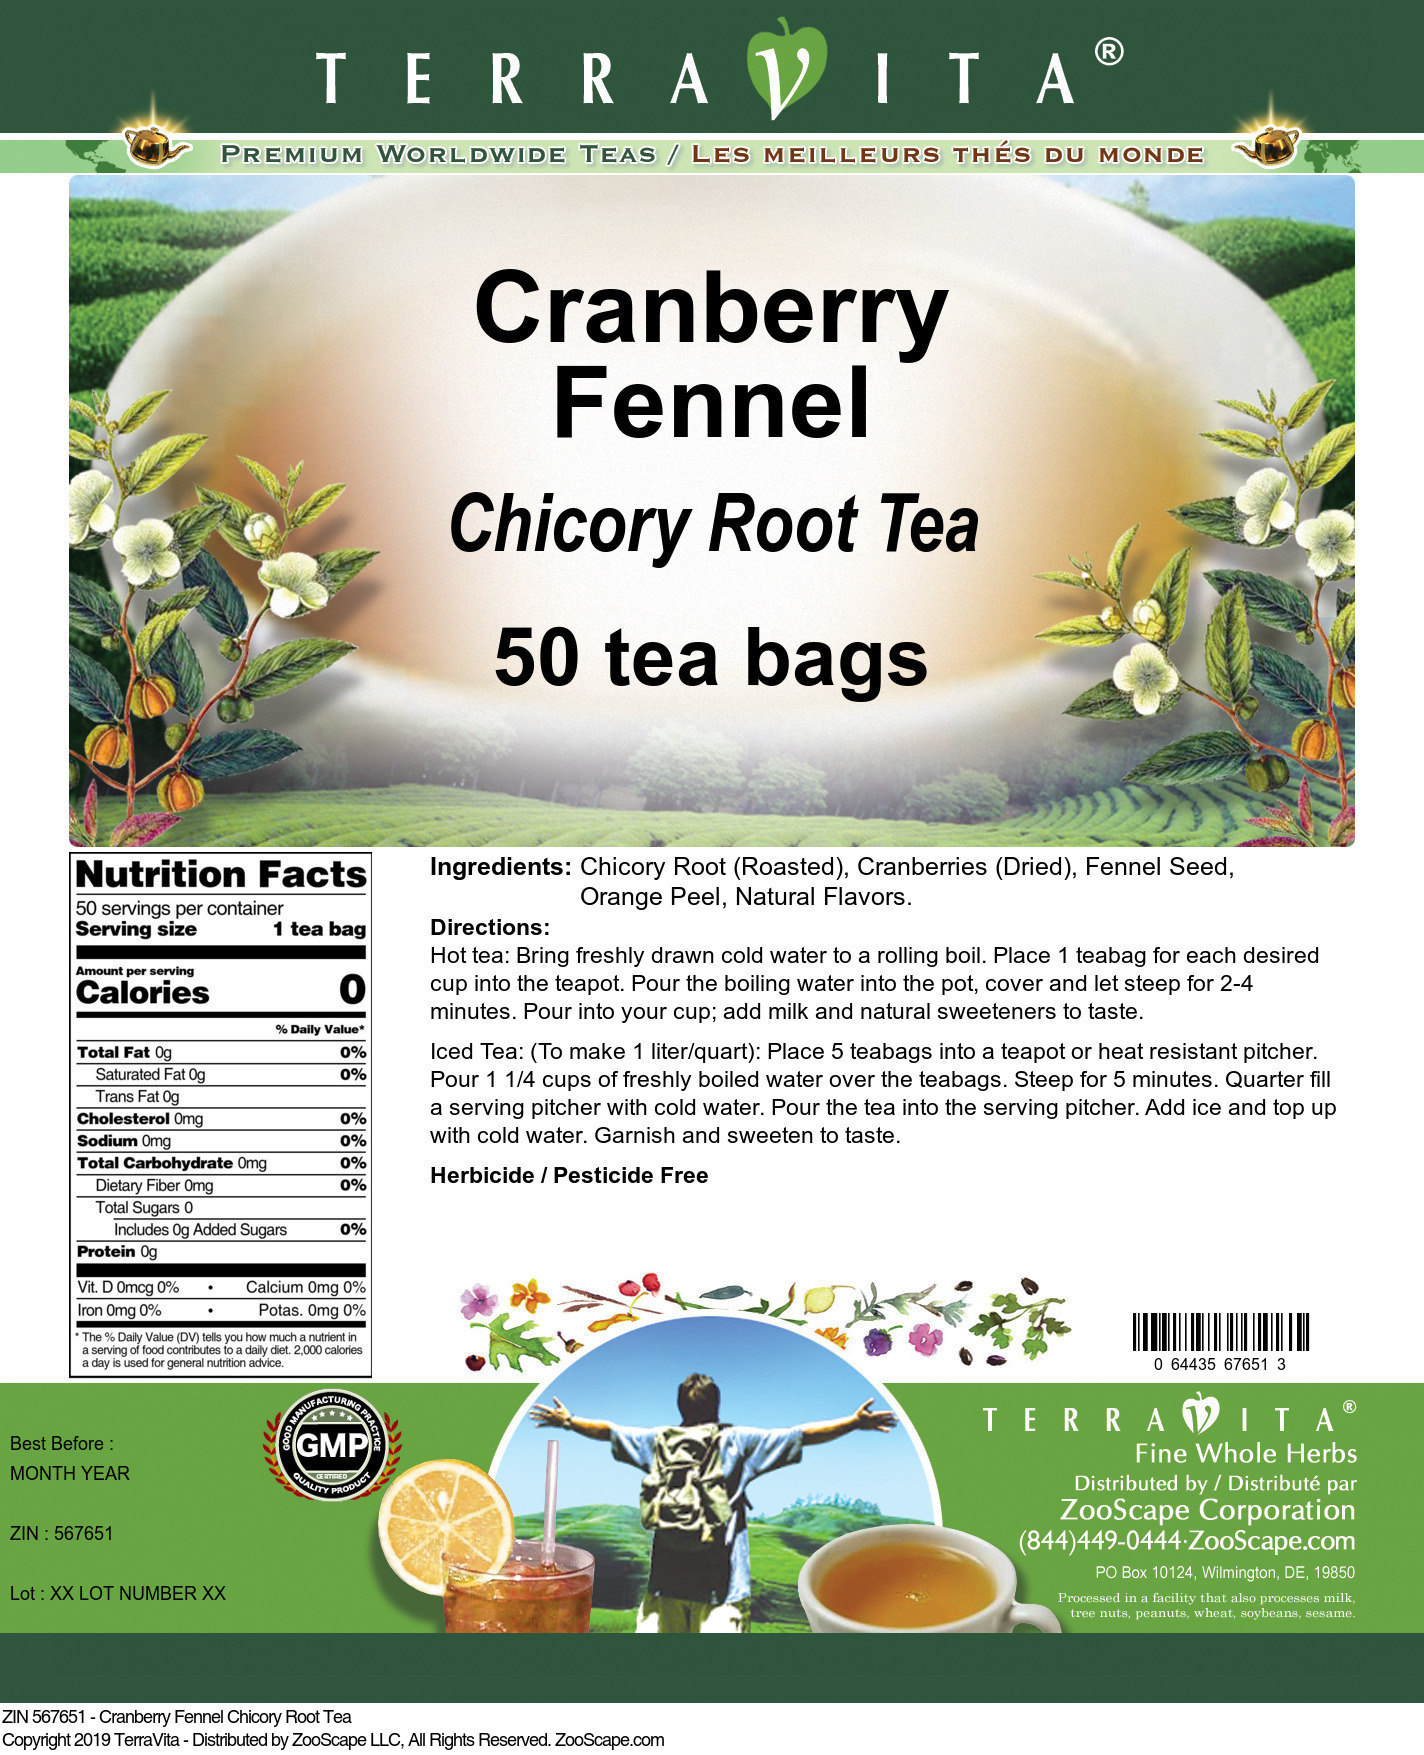 Cranberry Fennel Chicory Root Tea